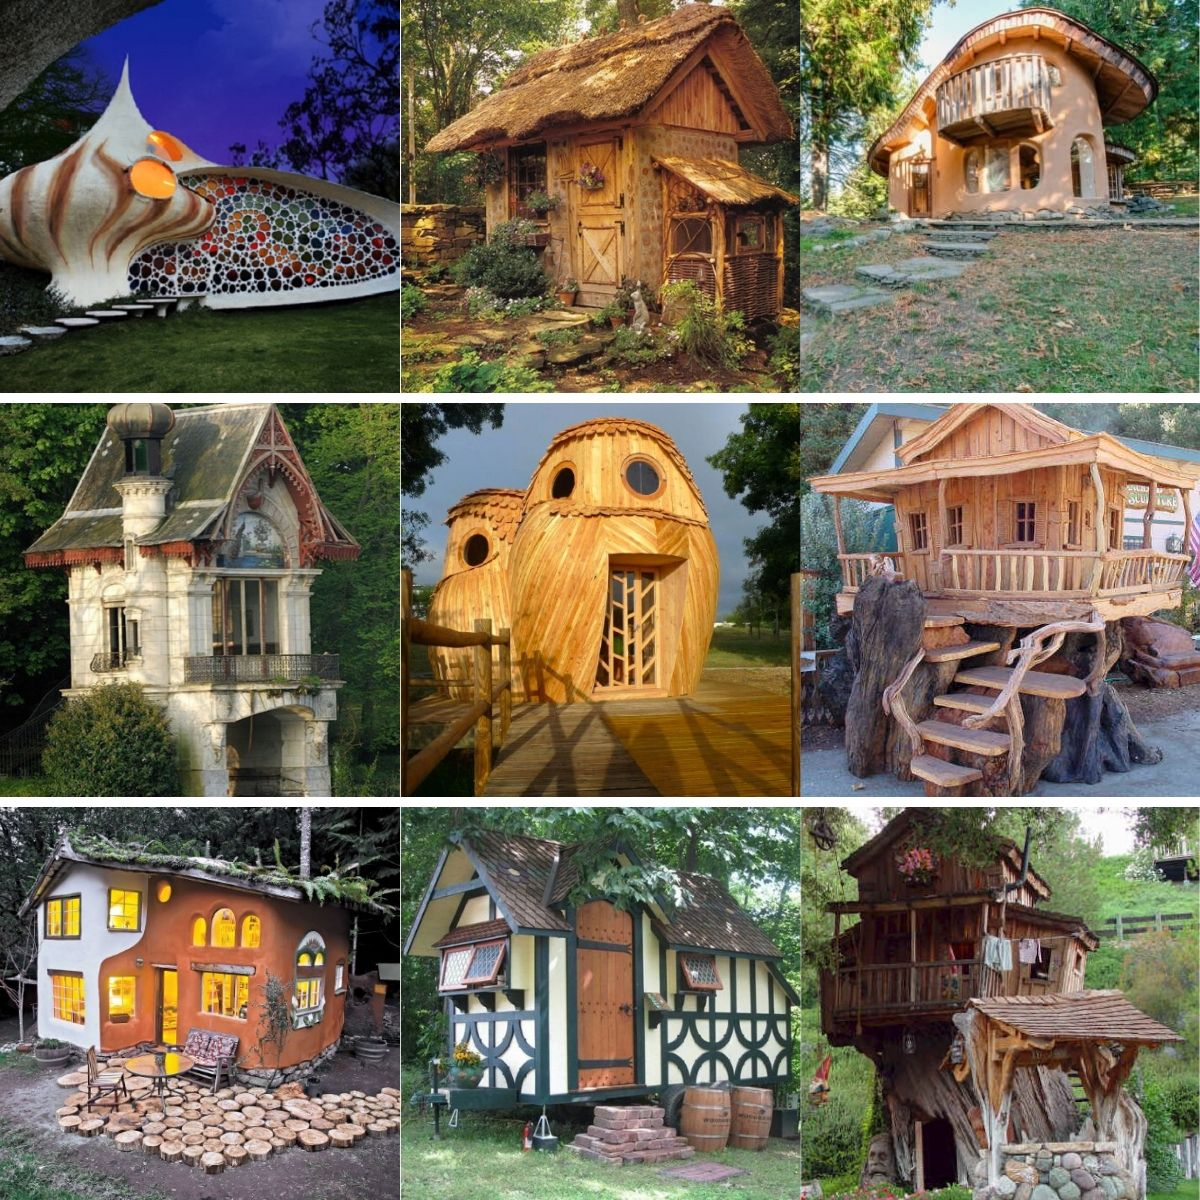 These 35 Enchanting Tiny Houses Look Just Like Real Life Fairy Houses Tiny Houses